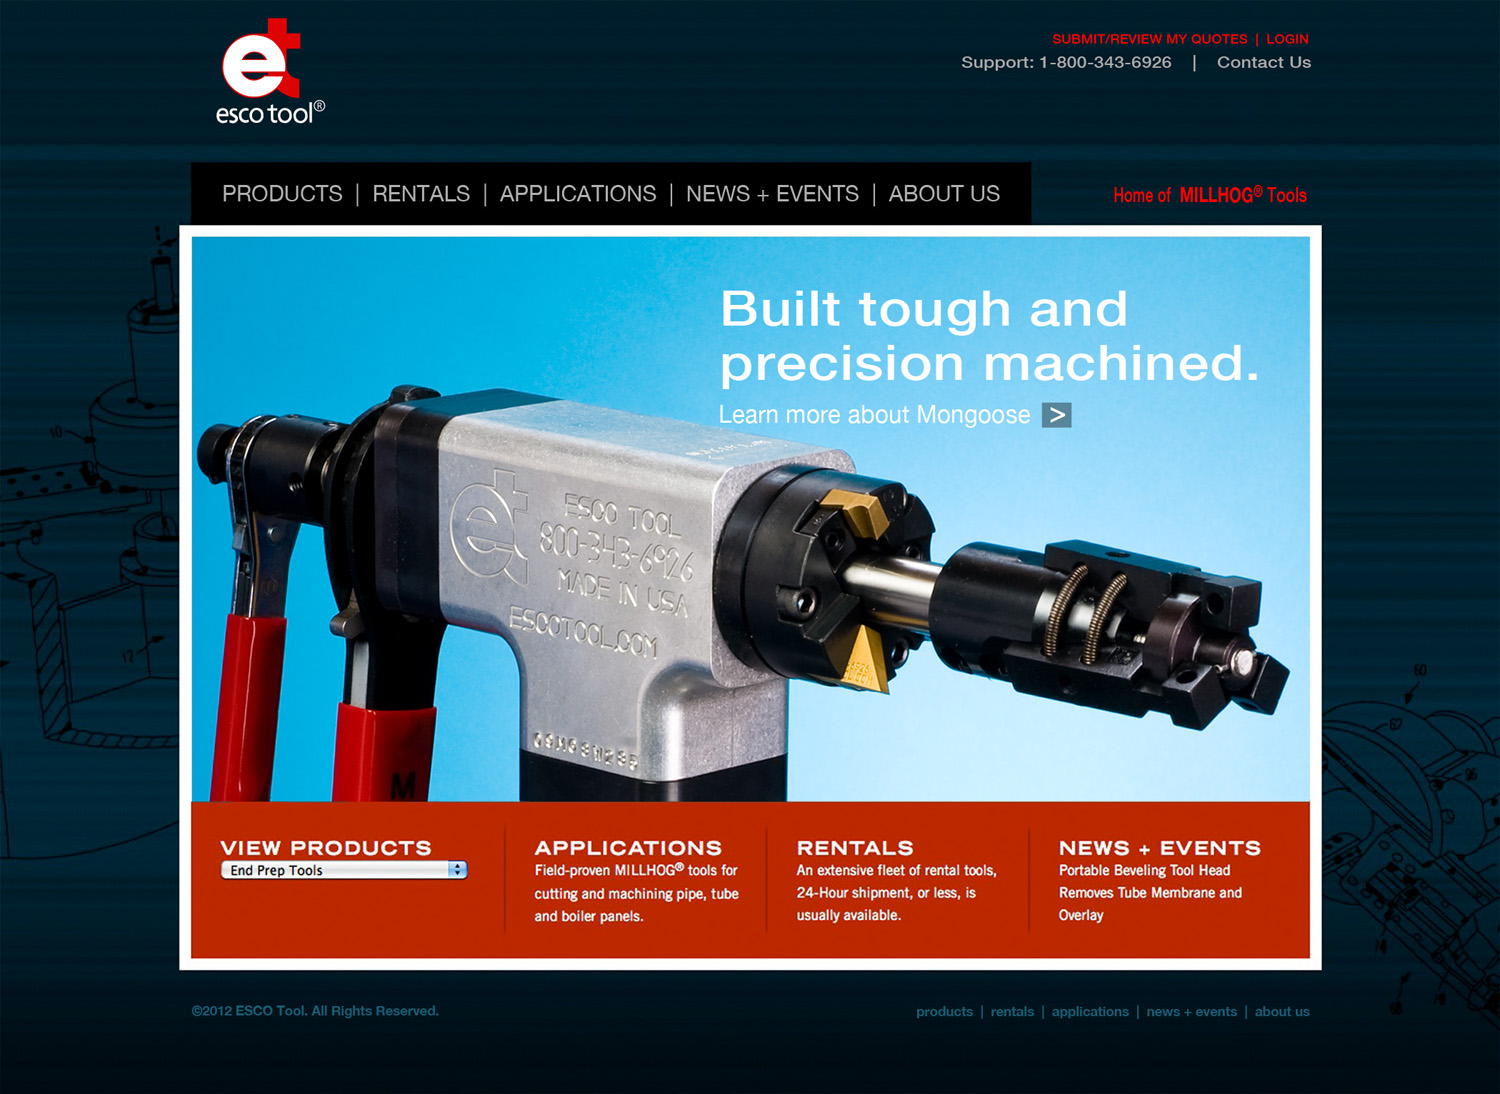 The new website uses an expanded search to select tools based upon product type, tool model, and tube size or application of the tool. Easy to filter, the search then offers a choice of tools to select from, provides photos of each, then a page for each with a detailed description, key features, specifications, application photos, a parts list, options, ordering information, and an easy RFQ capability.(Click on screen shot to enlarge it)